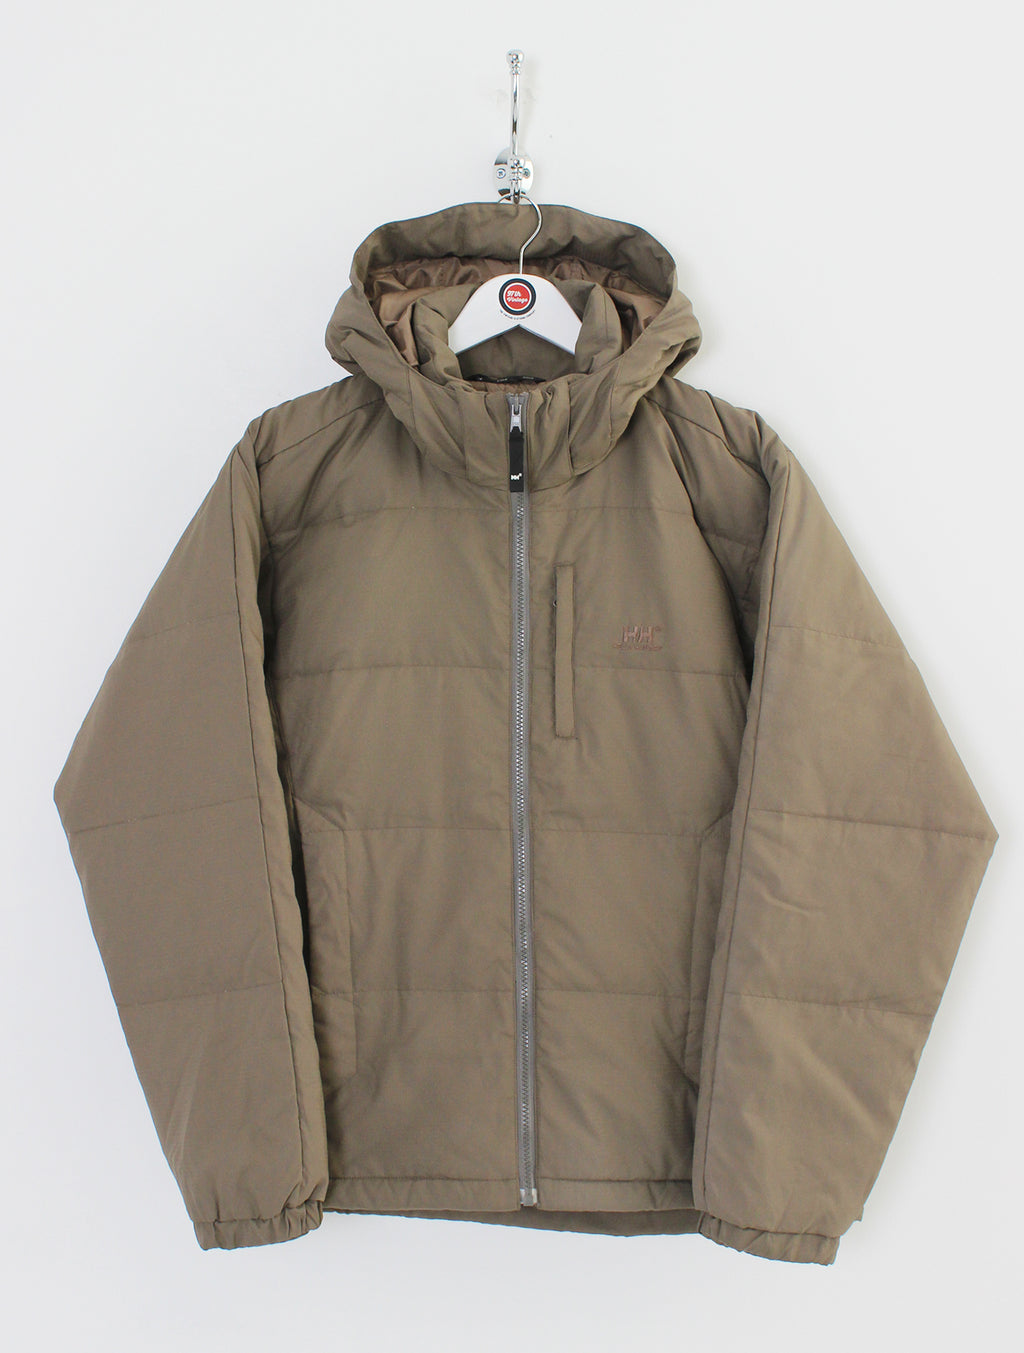 Helly Hansen Puffer Jacket (M)